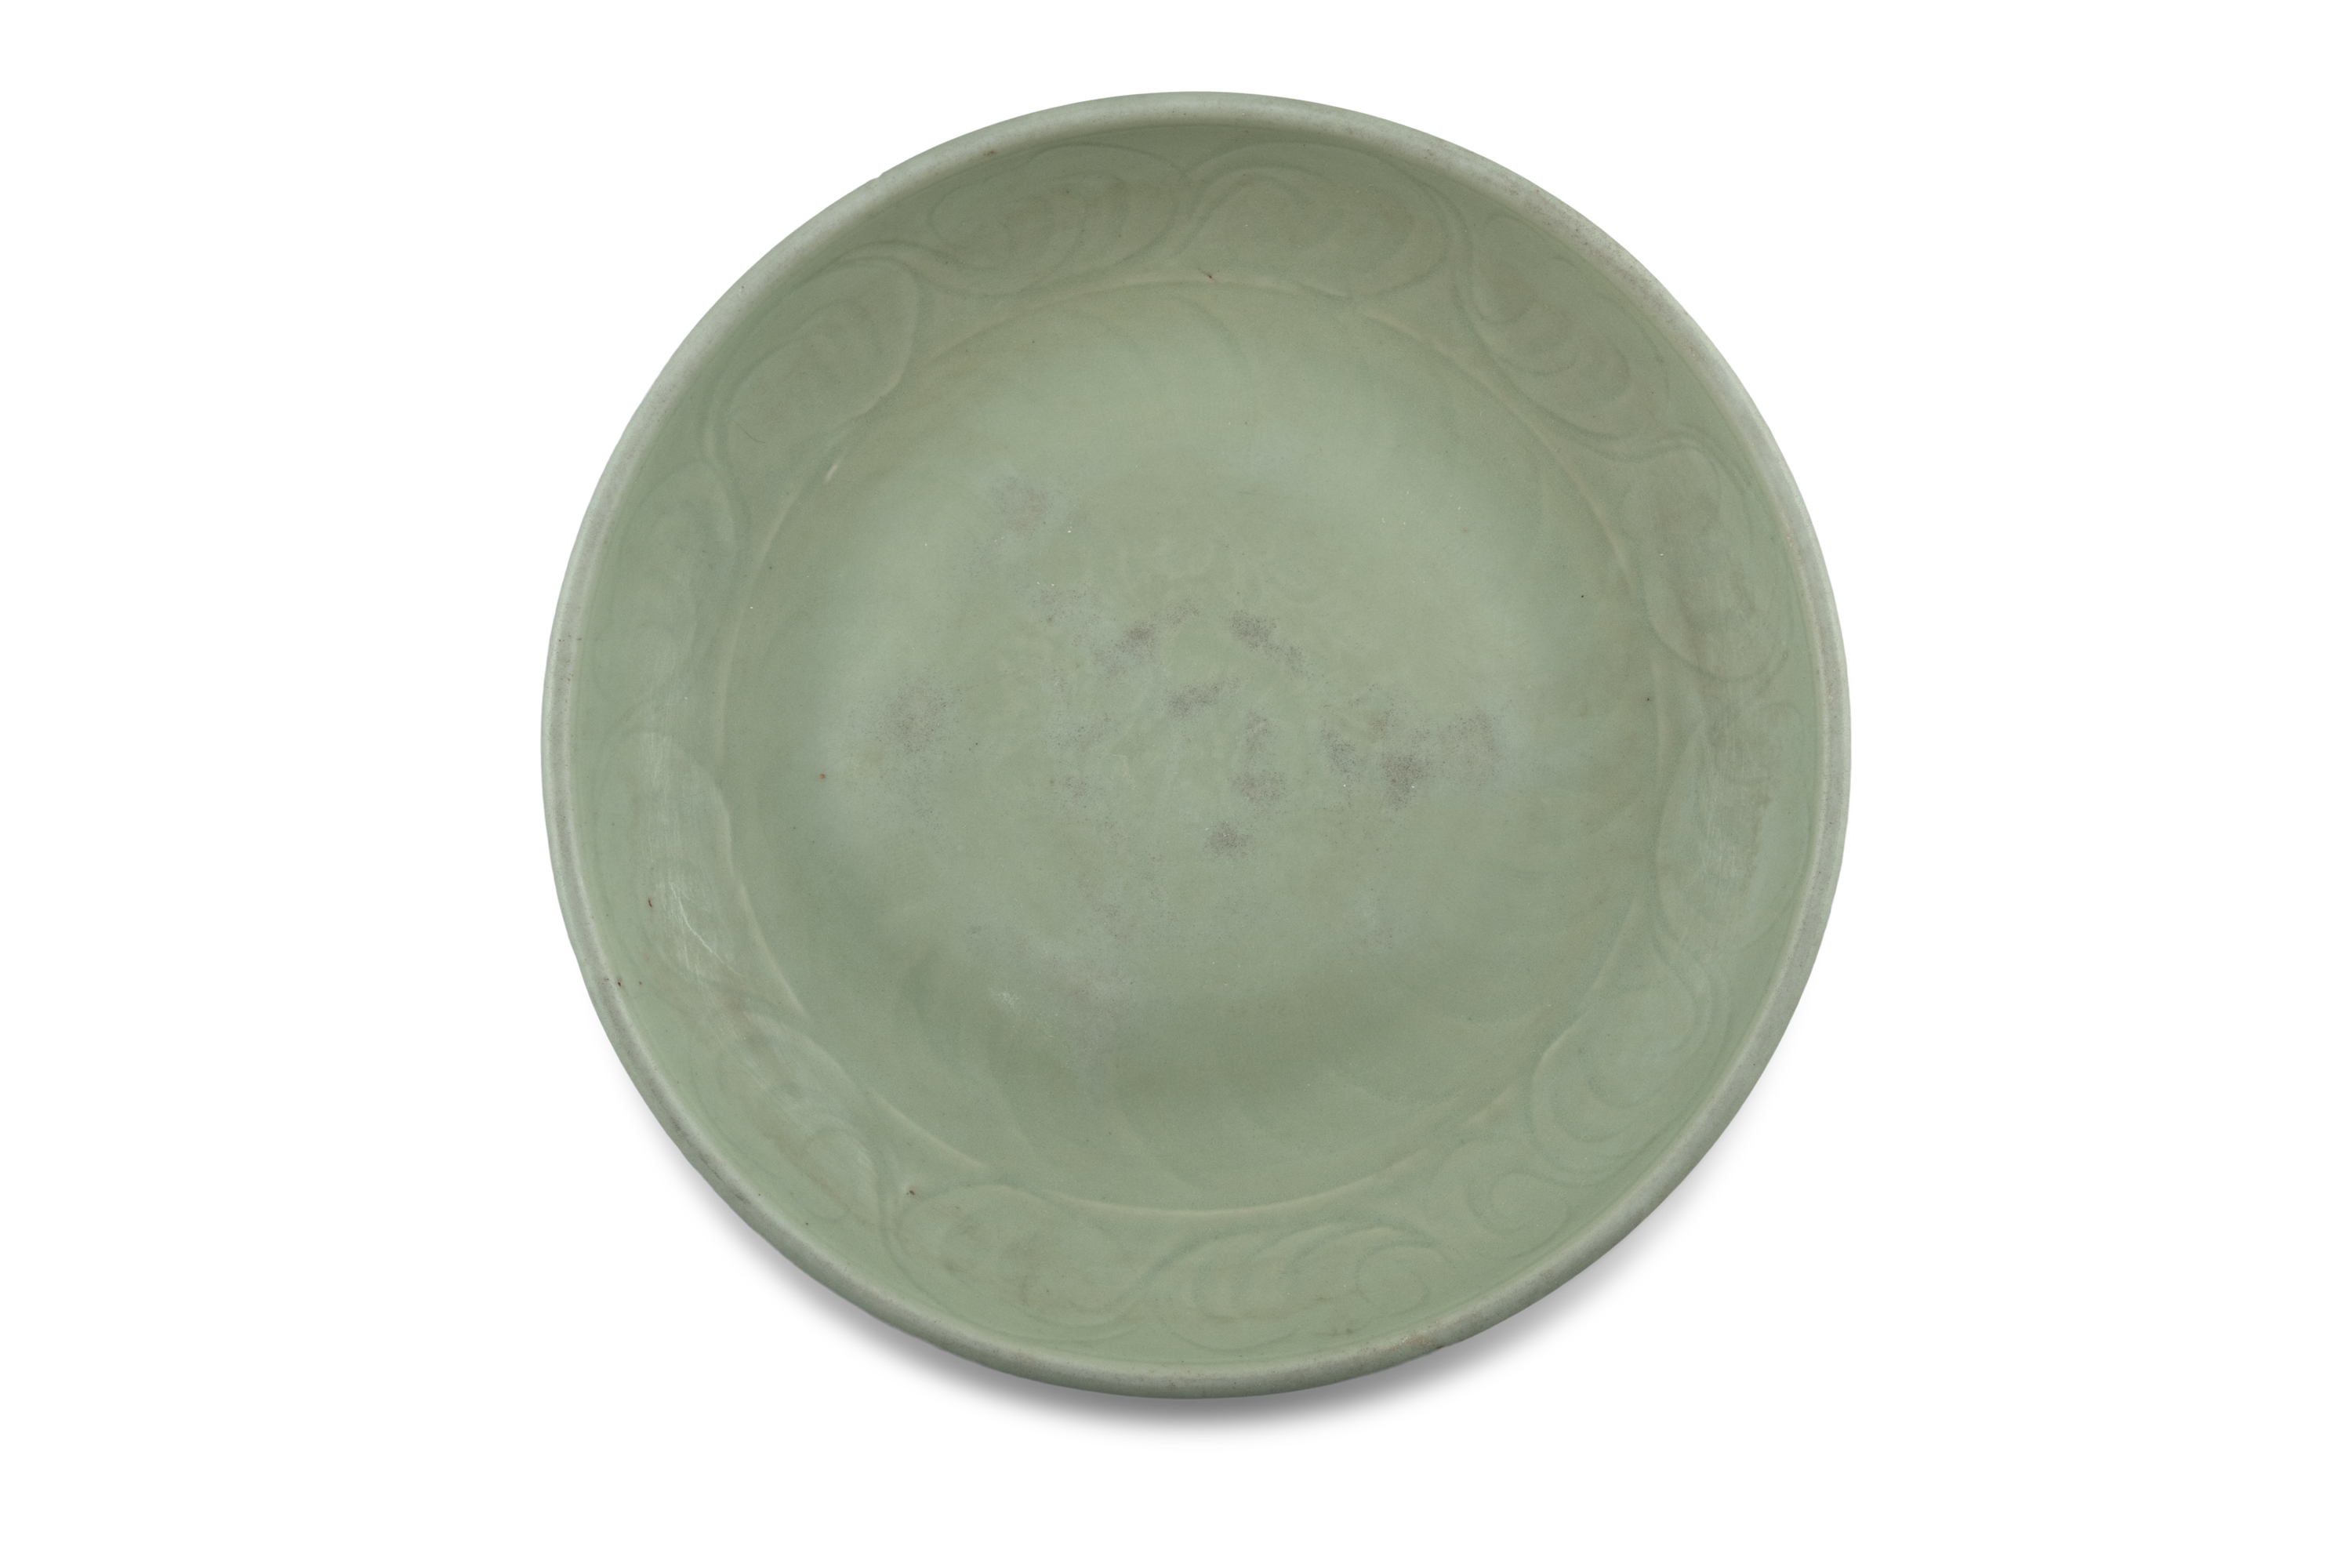 A LONGQUAN CELADON 'FLORAL SPRAY' FLAT DISH With a both engraved and molded design, the center